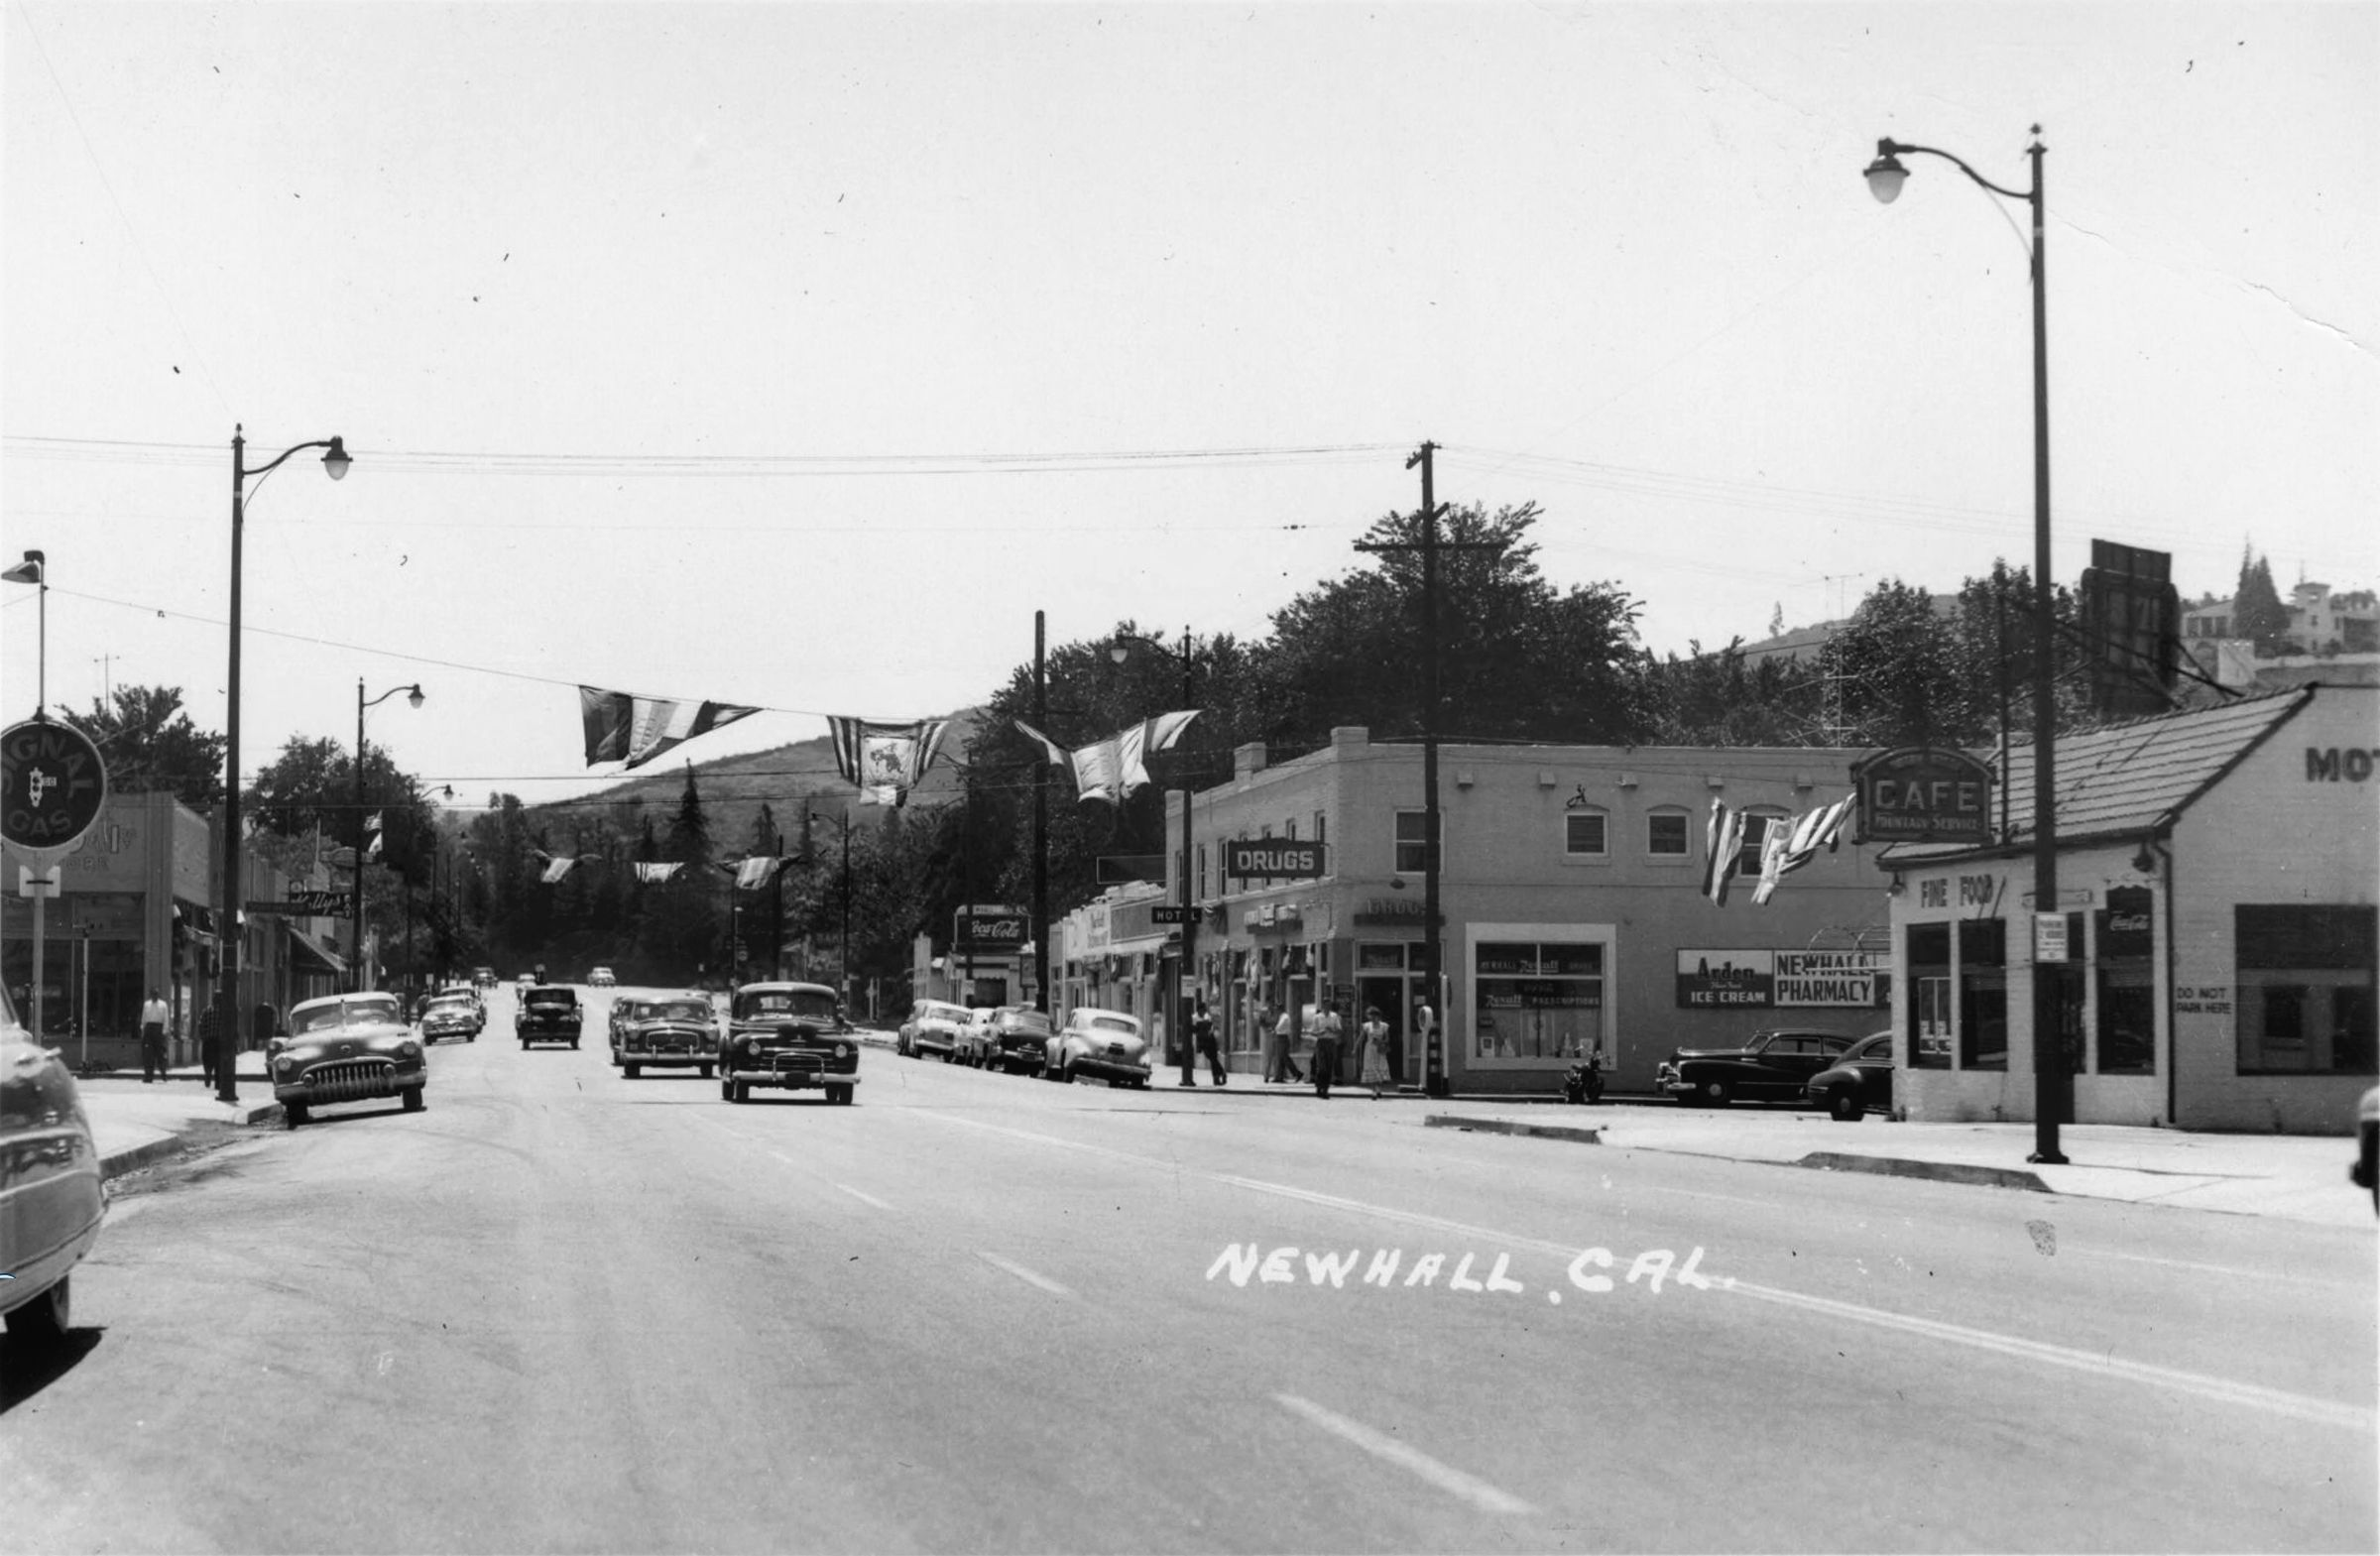 Scvhistory Com Lw2553 Newhall Spruce Market Signal Gas Newhall Pharmacy Motor Stage Cafe Etc 1952 Newhall Santa Clarita Valley Gas